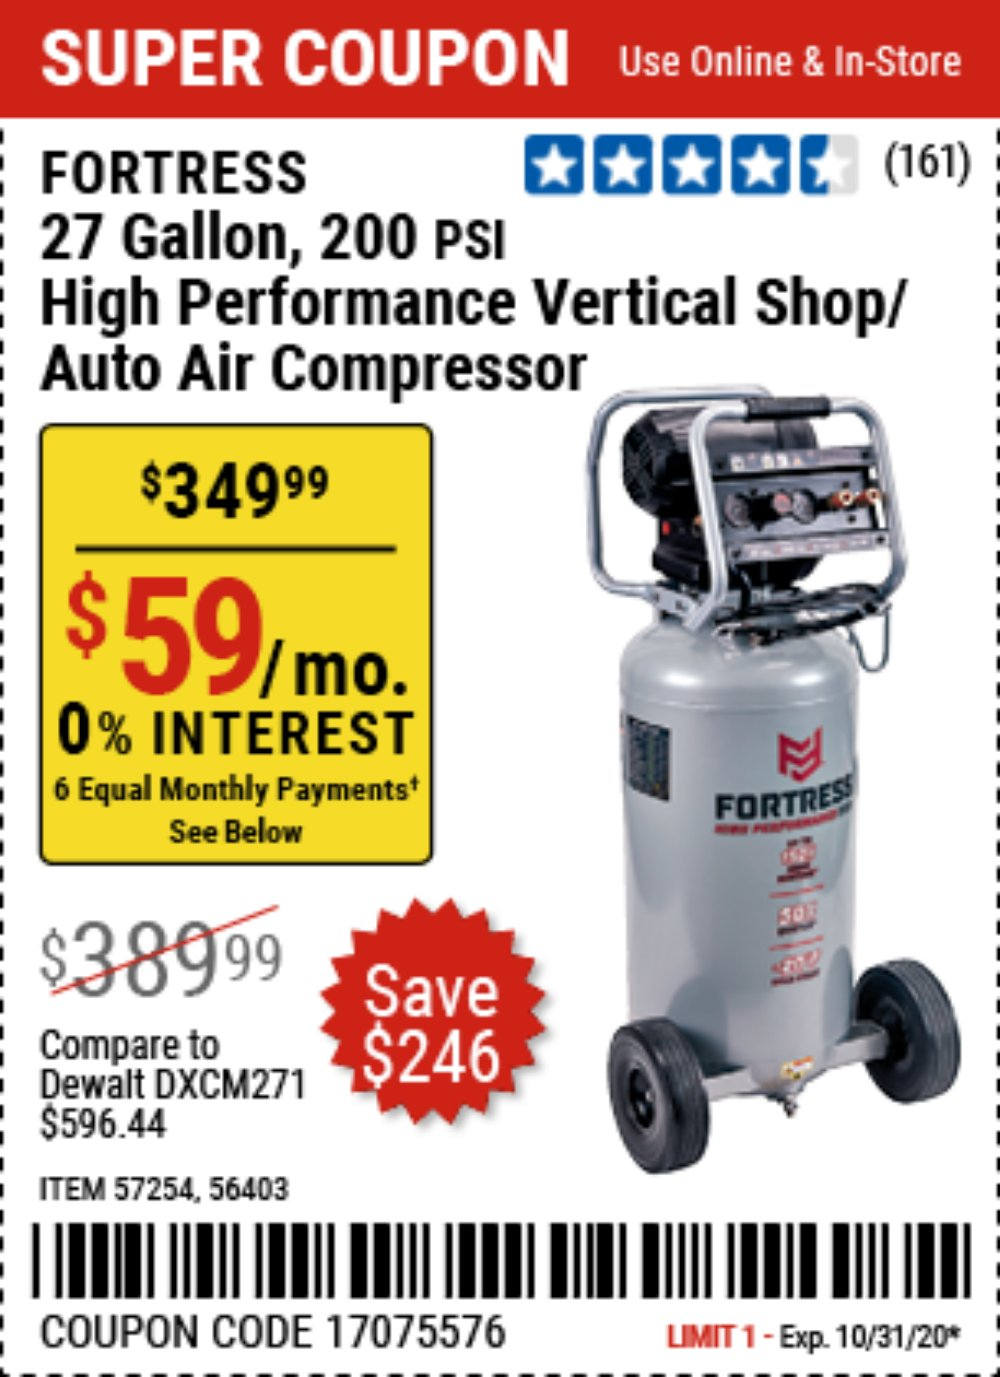 Harbor Freight Coupon, HF Coupons - Fortress 27 Gallon Oil-free Professional Air Compressor